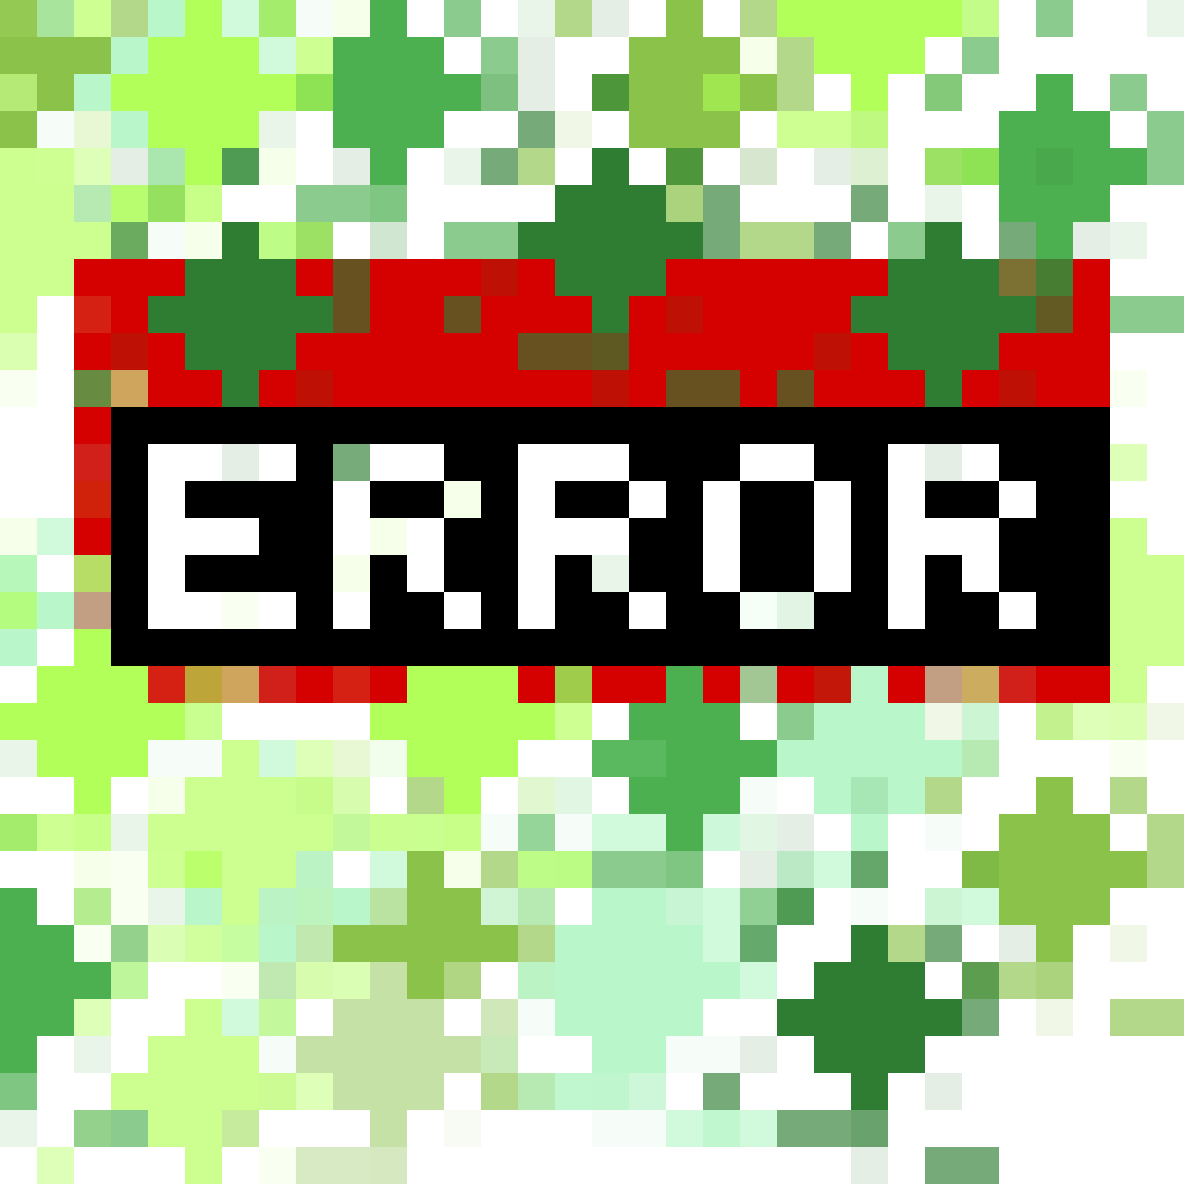 Error? by Maximum-Ride